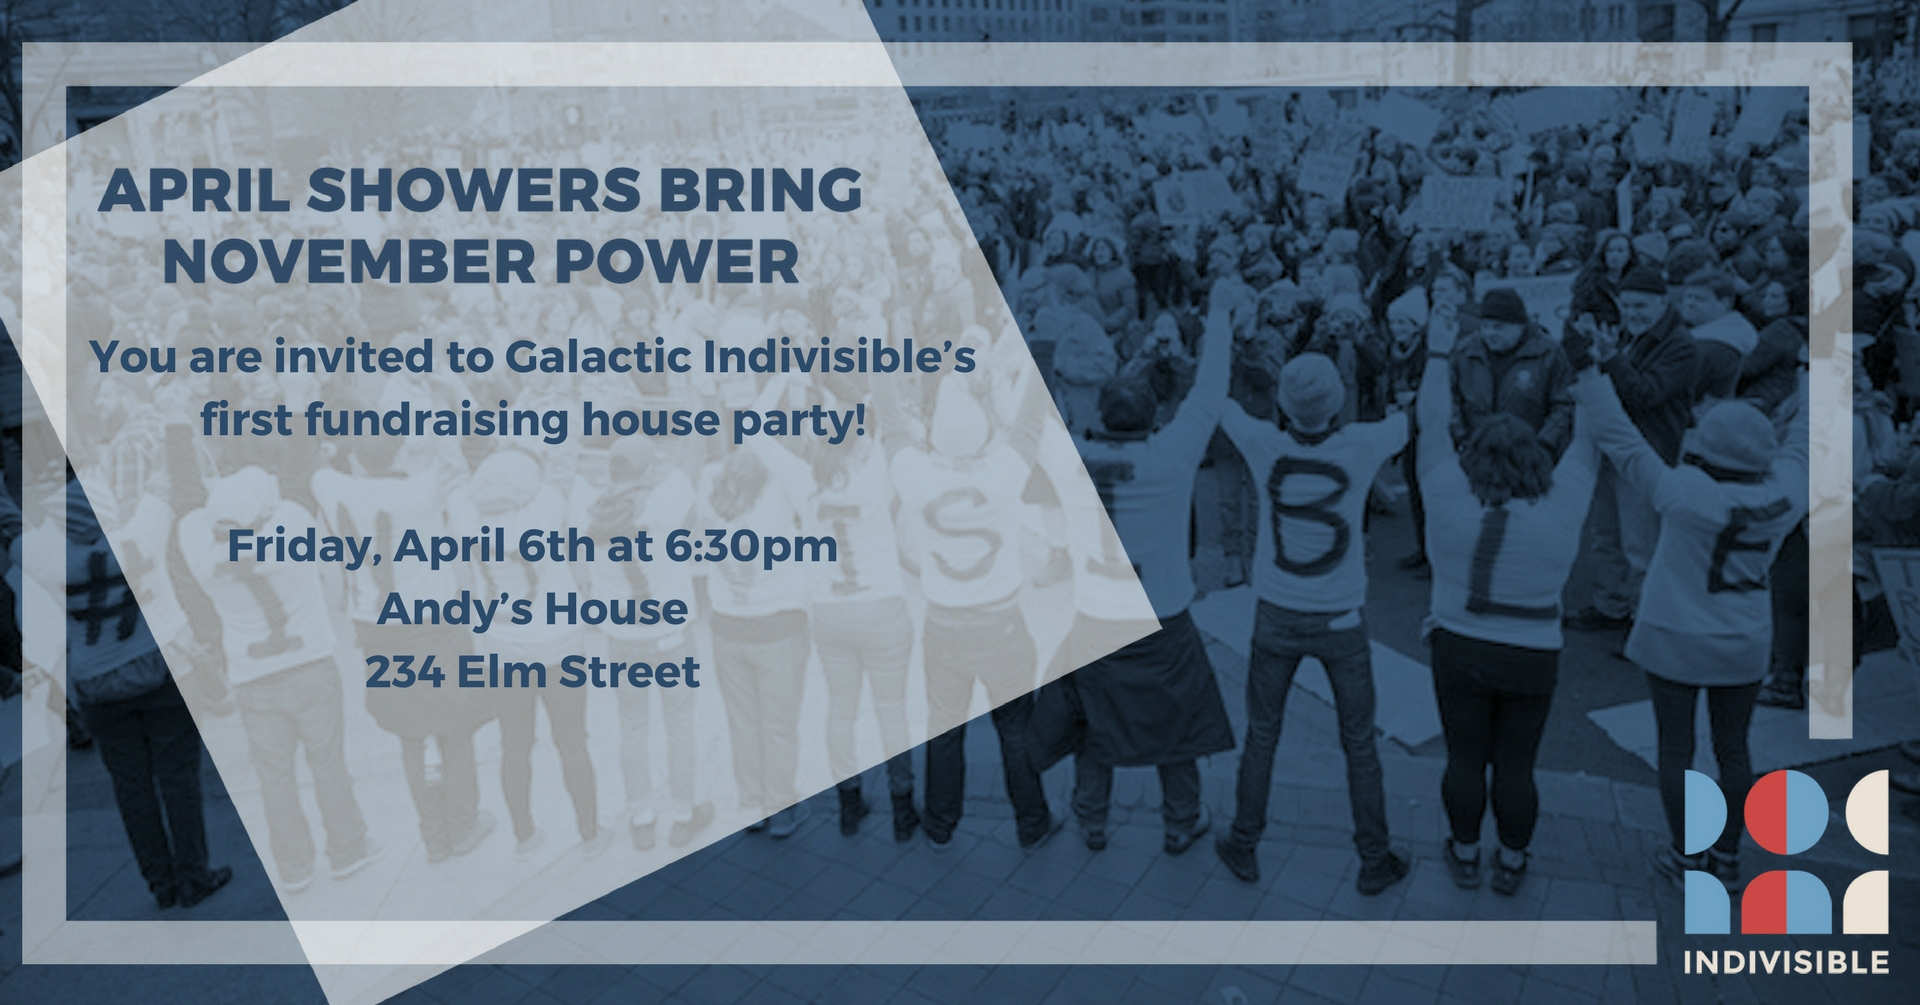 You are invited to Galactic Indivisible's first fundraising house party! Friday, April 6th at 6: 30pm. Andy's House: 234 Elm Street